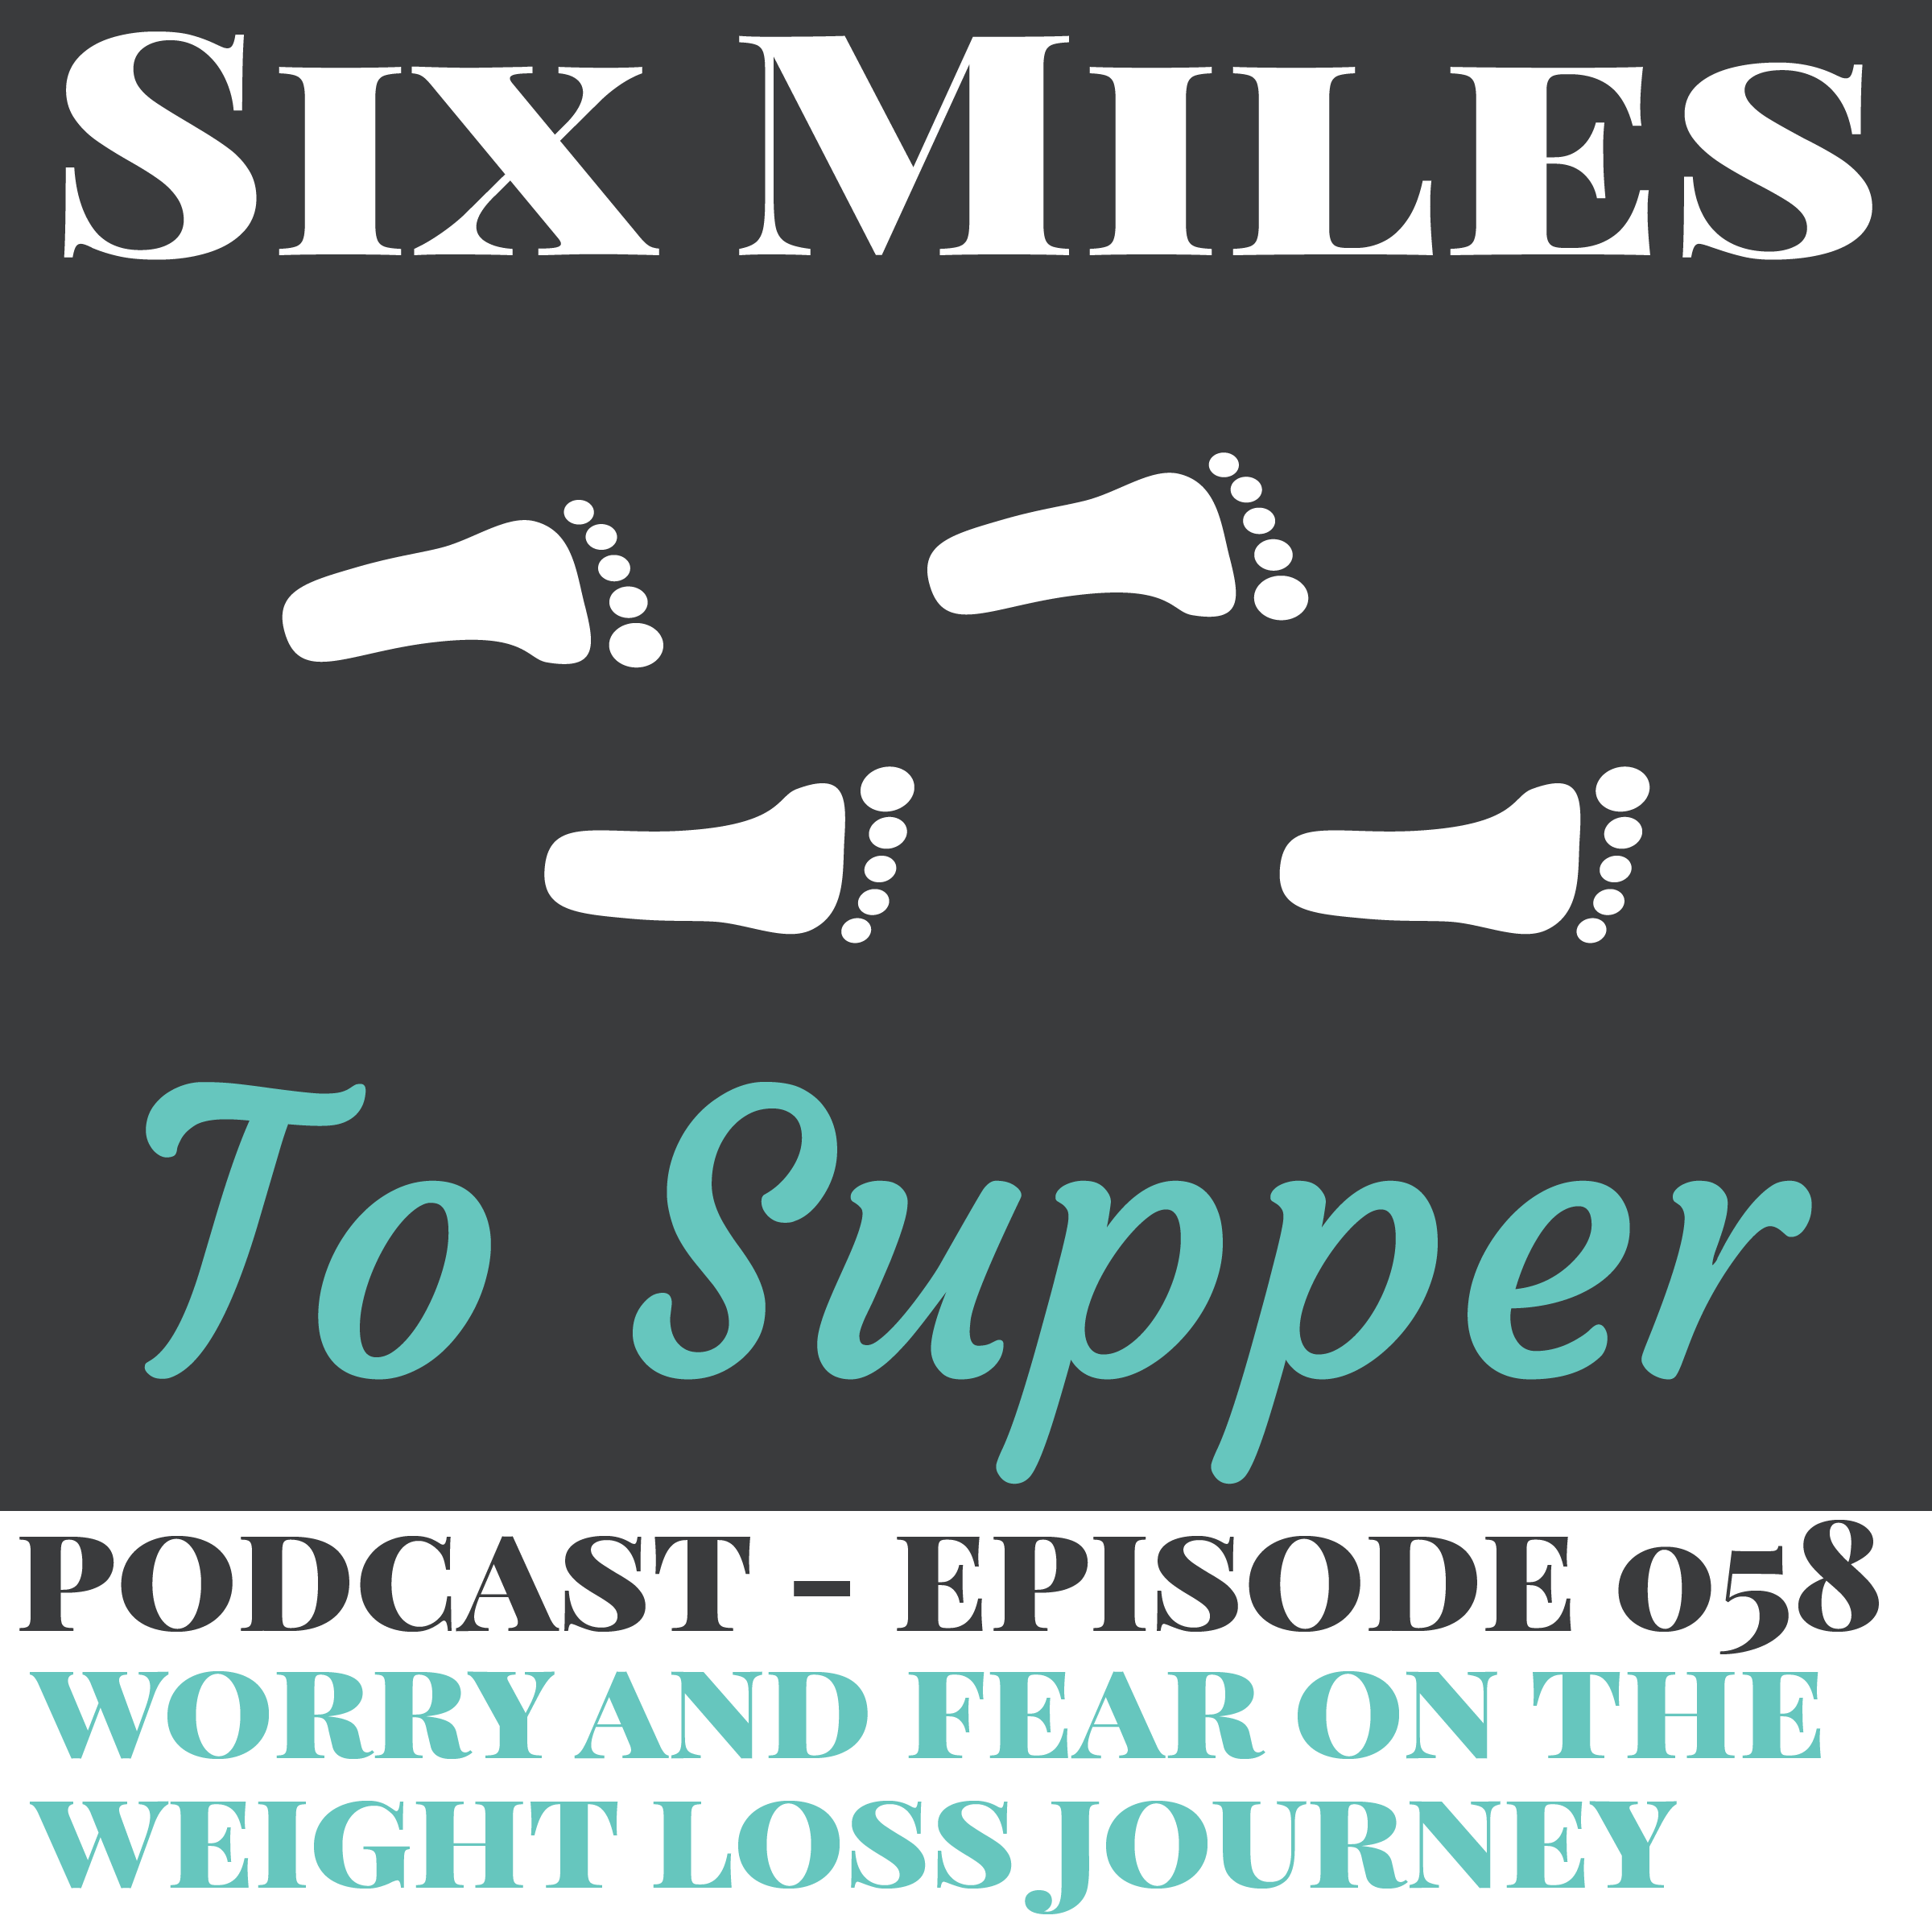 SMTS 058: Dealing With Worry and Fear on the Weight Loss Journey